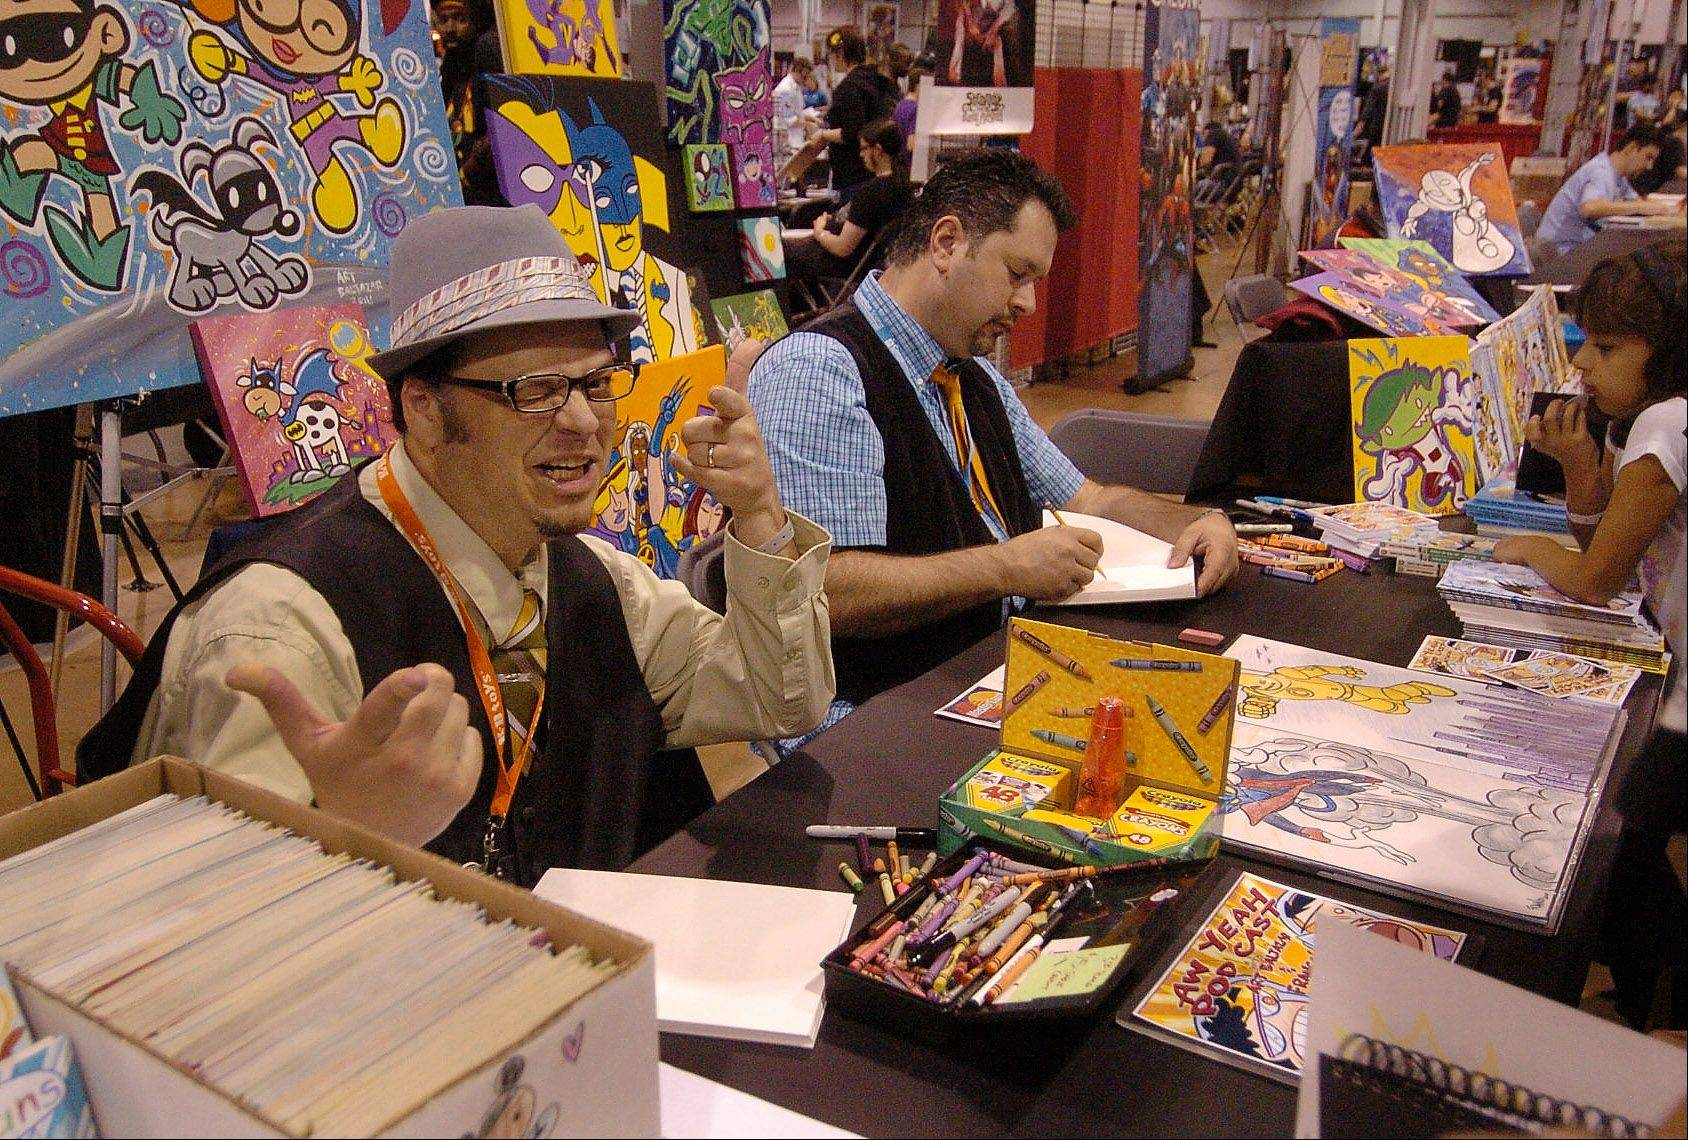 Comic Book artist Art Balthazar from Streamwood, signing some os his work at the Wizard World Chicago Comic Con.